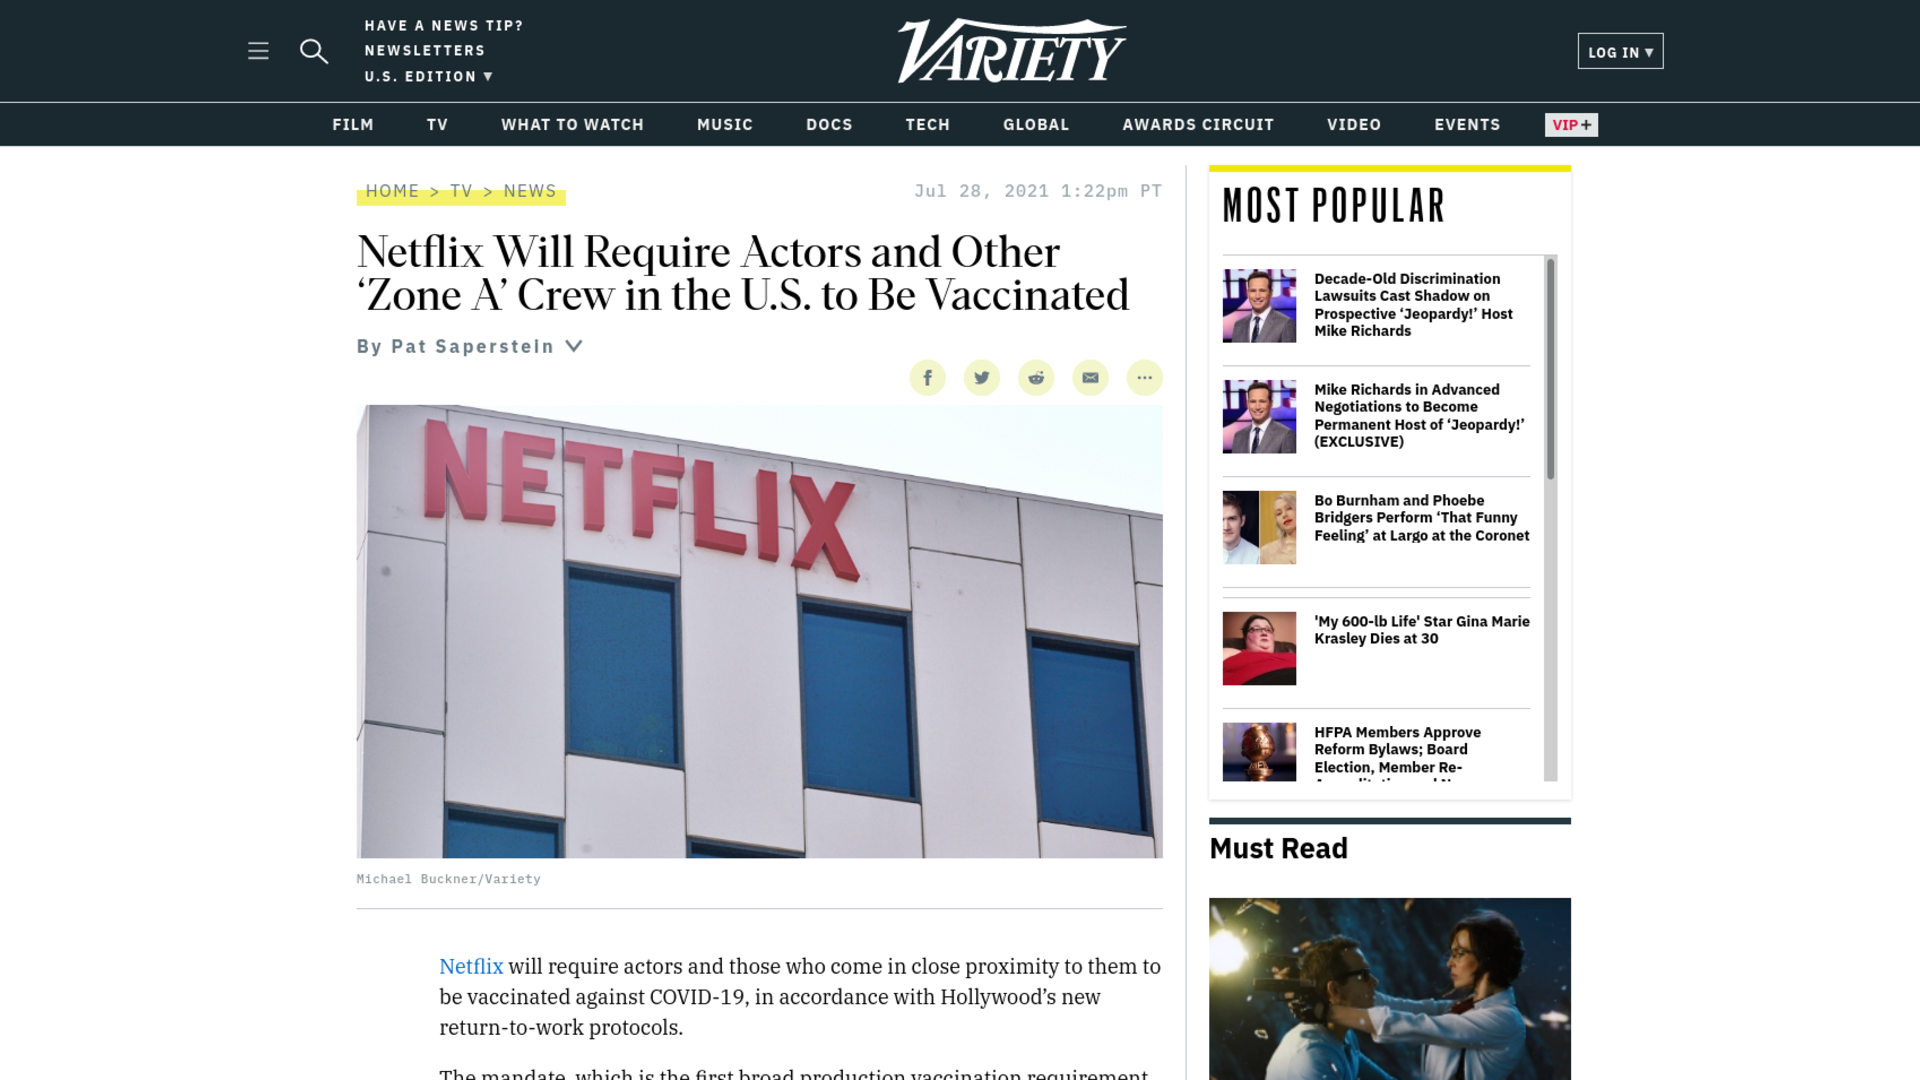 Fairness Rocks News Netflix Will Require Actors and Other 'Zone A' Crew in the U.S. to Be Vaccinated